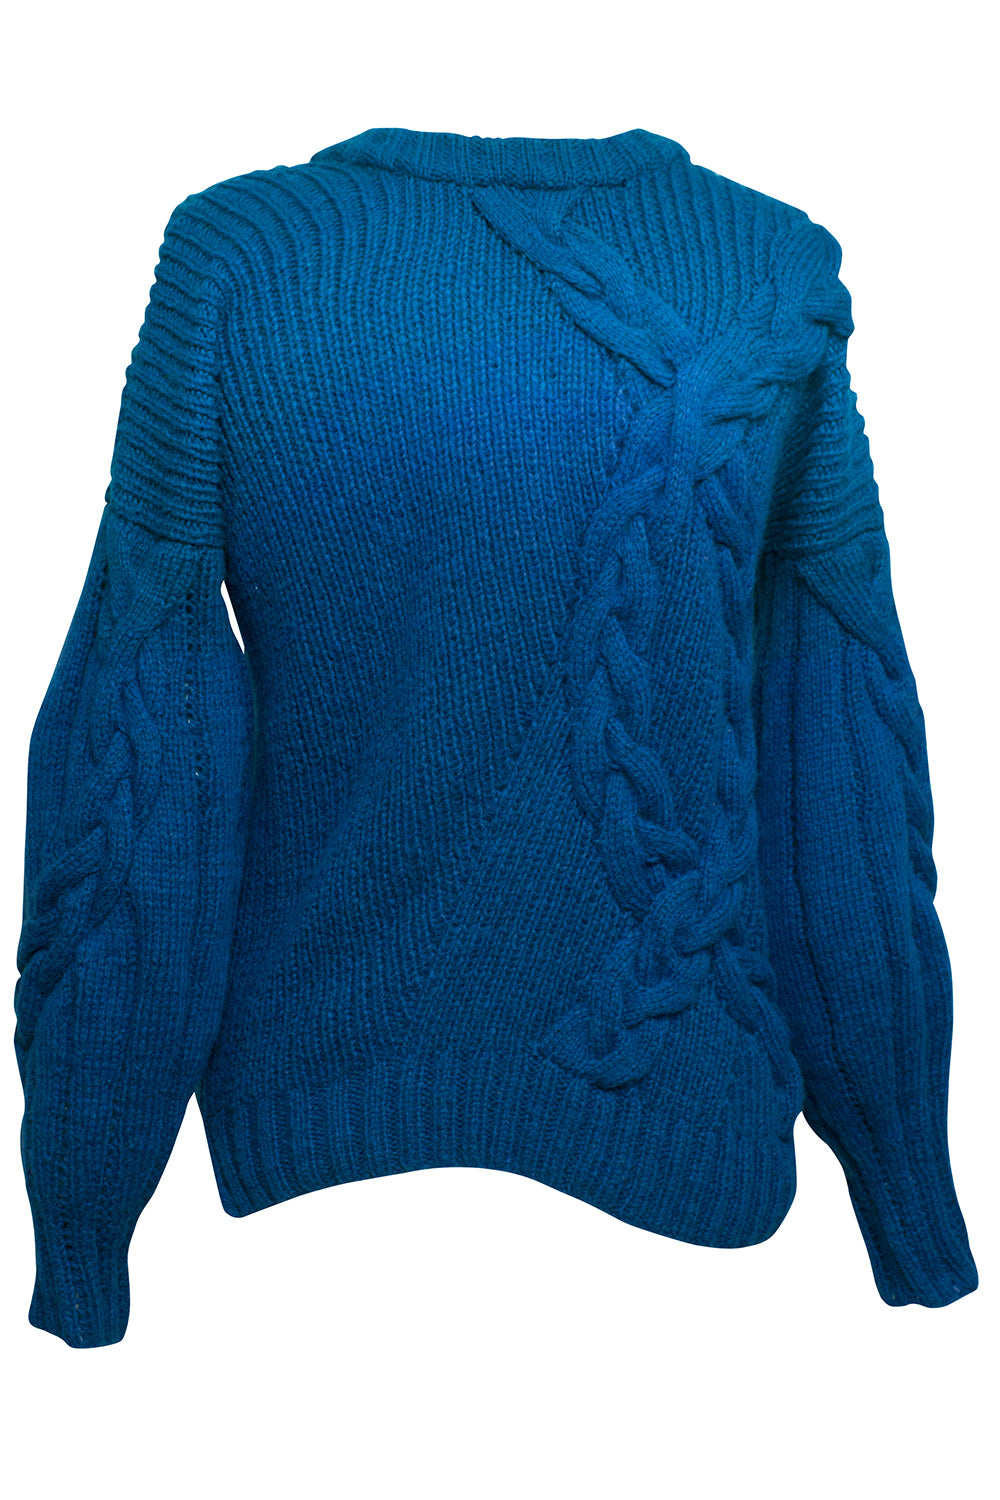 Juana Knit Cable Sweater in Blue Ombre